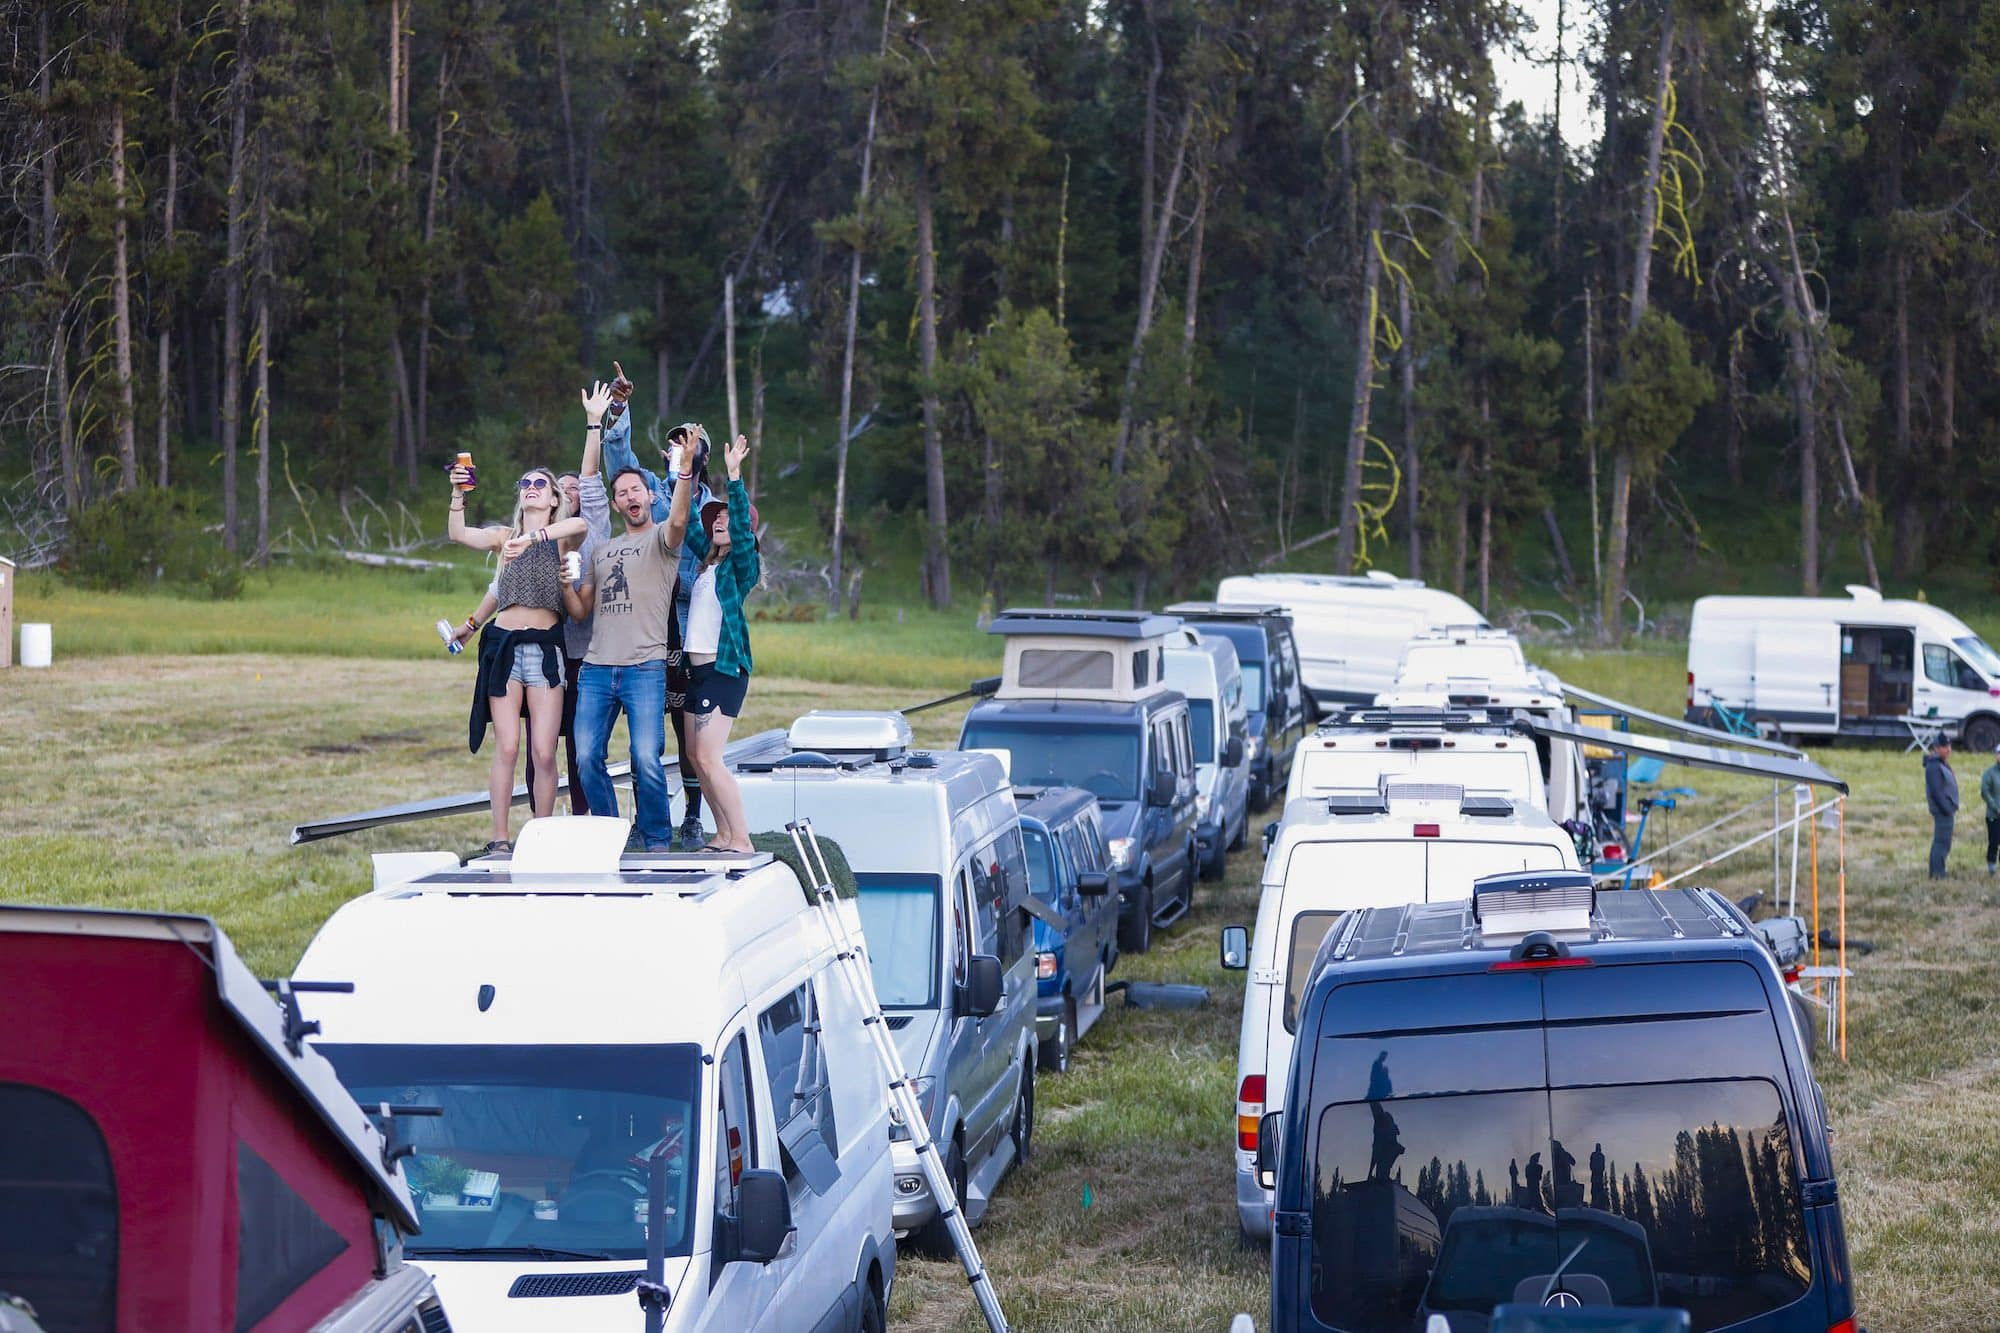 Read about the top highlights from Bearfoot Theory's first-ever Open Roads Fest. A van life festival for outdoor enthusiasts.